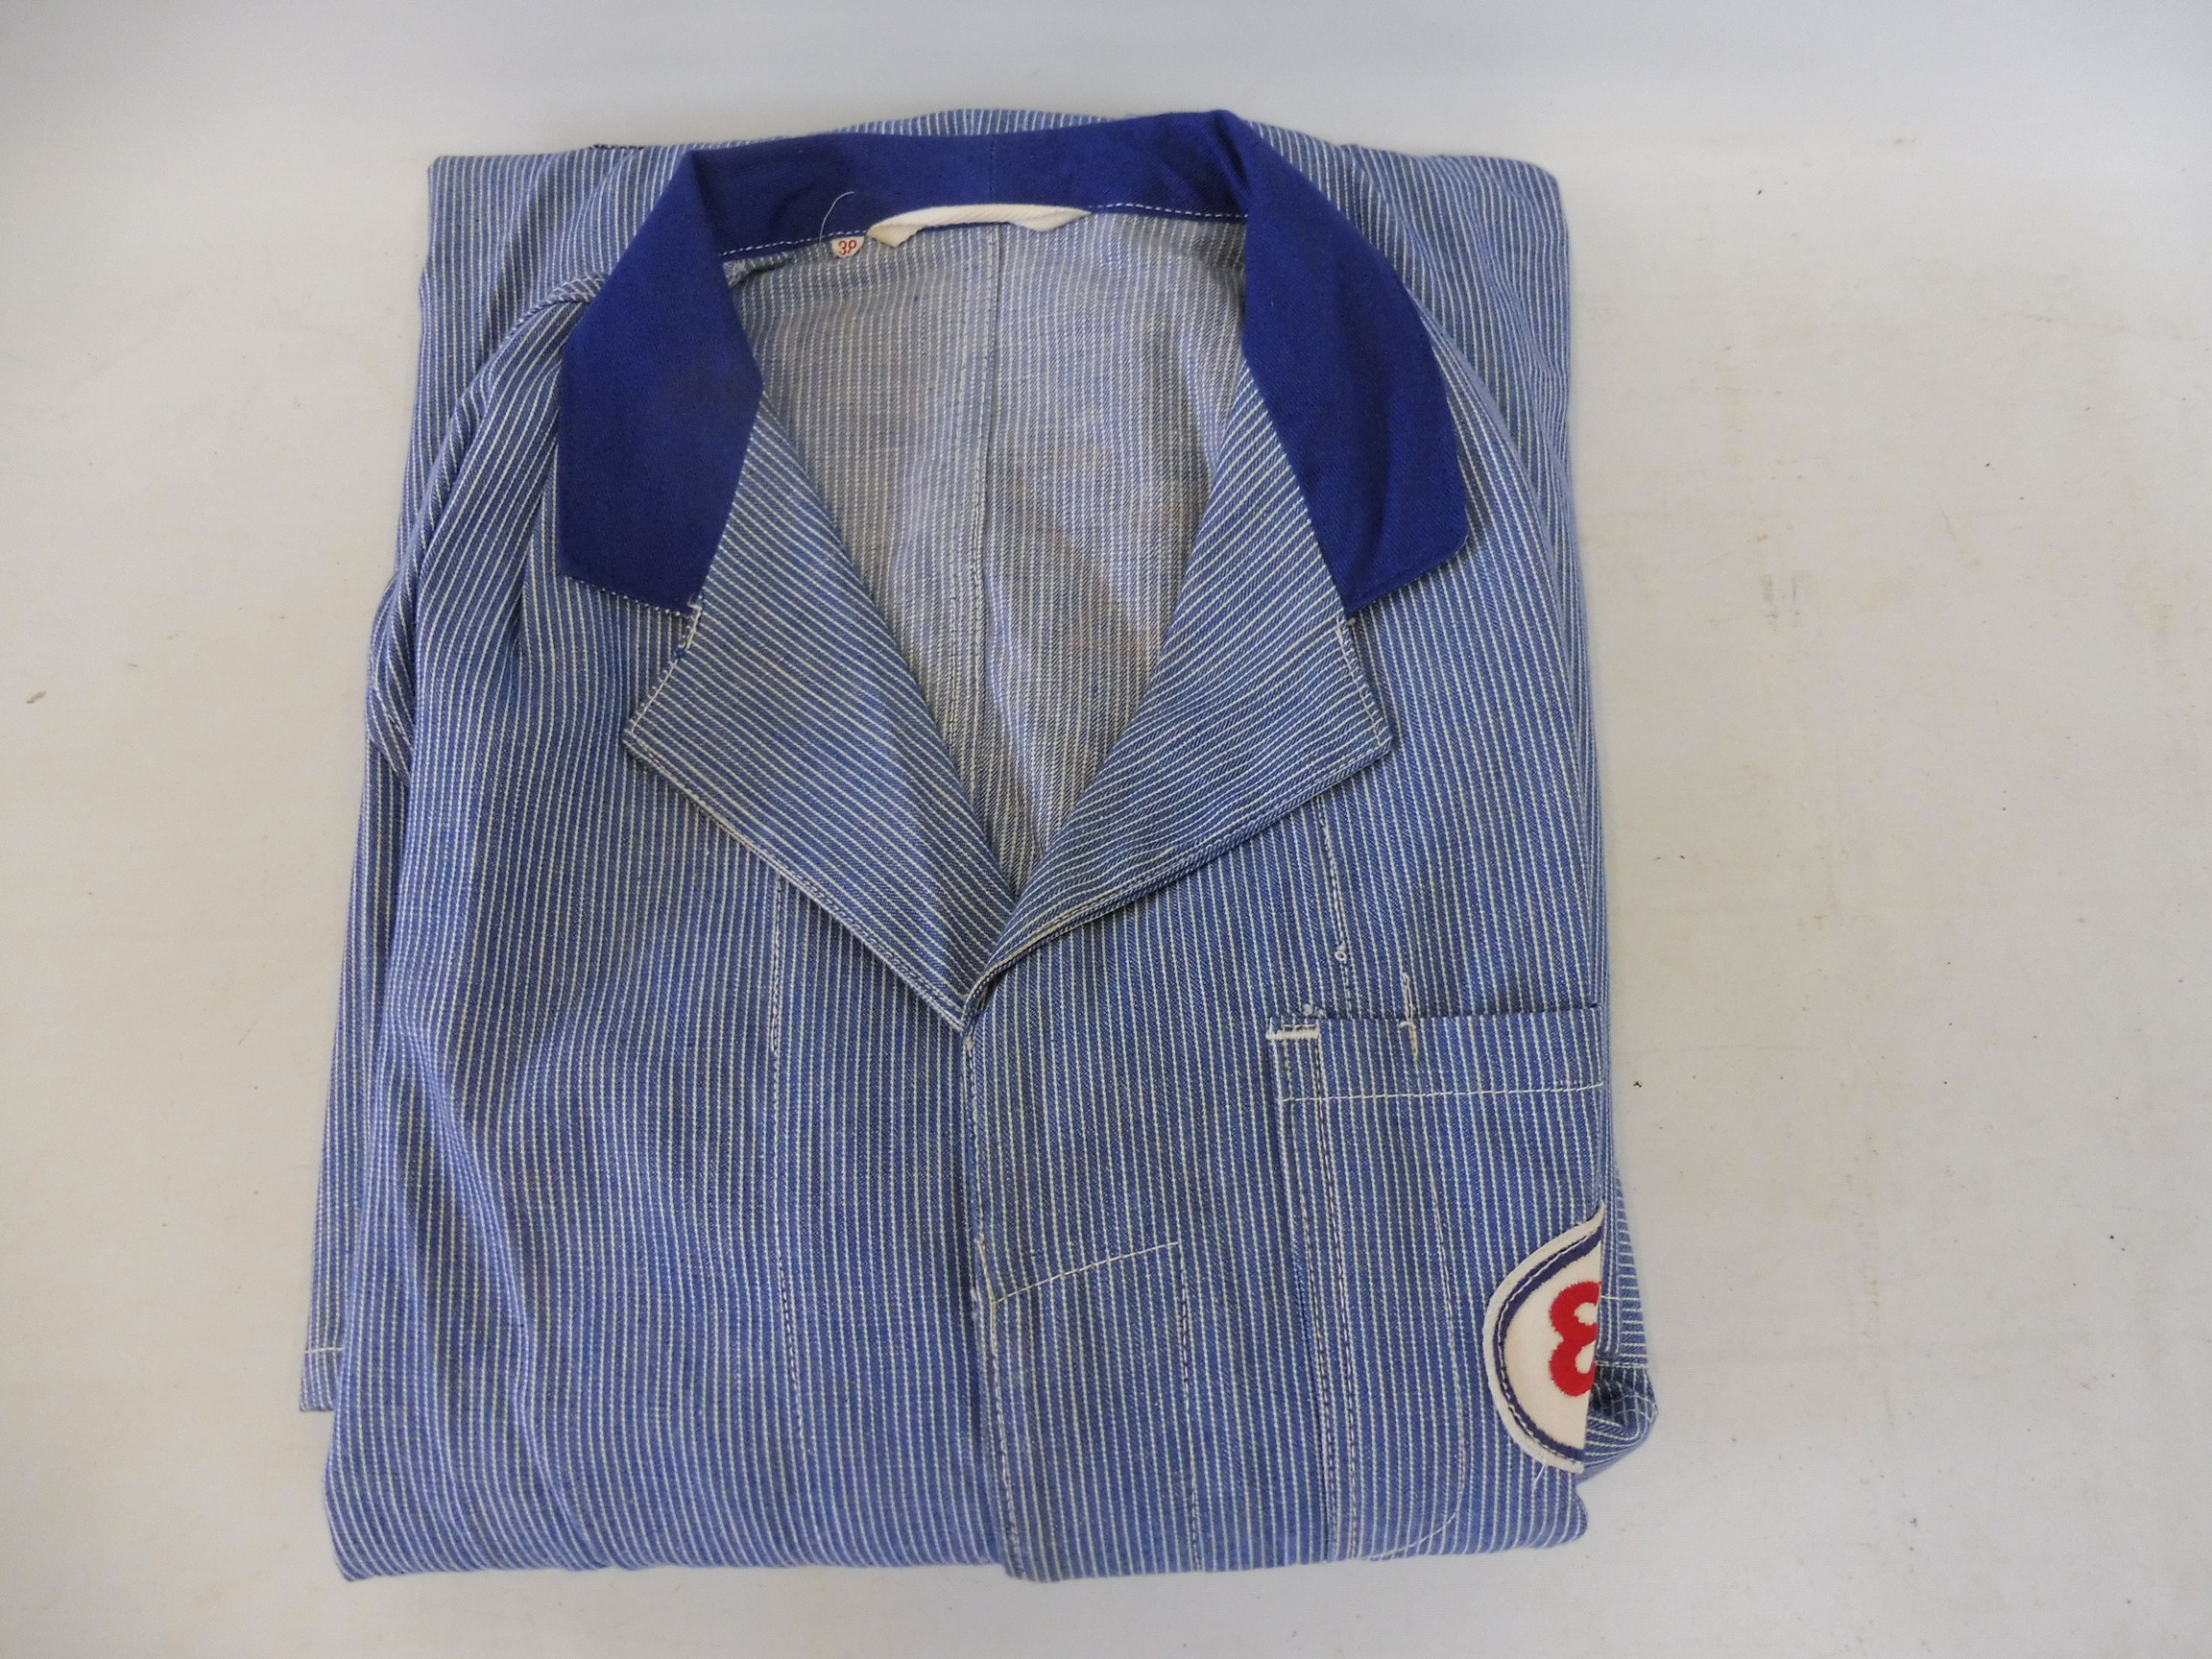 A new old stock overcoat with Esso branding, manufactured by Beacon Reg'd, size 38 (slightly - Image 6 of 6